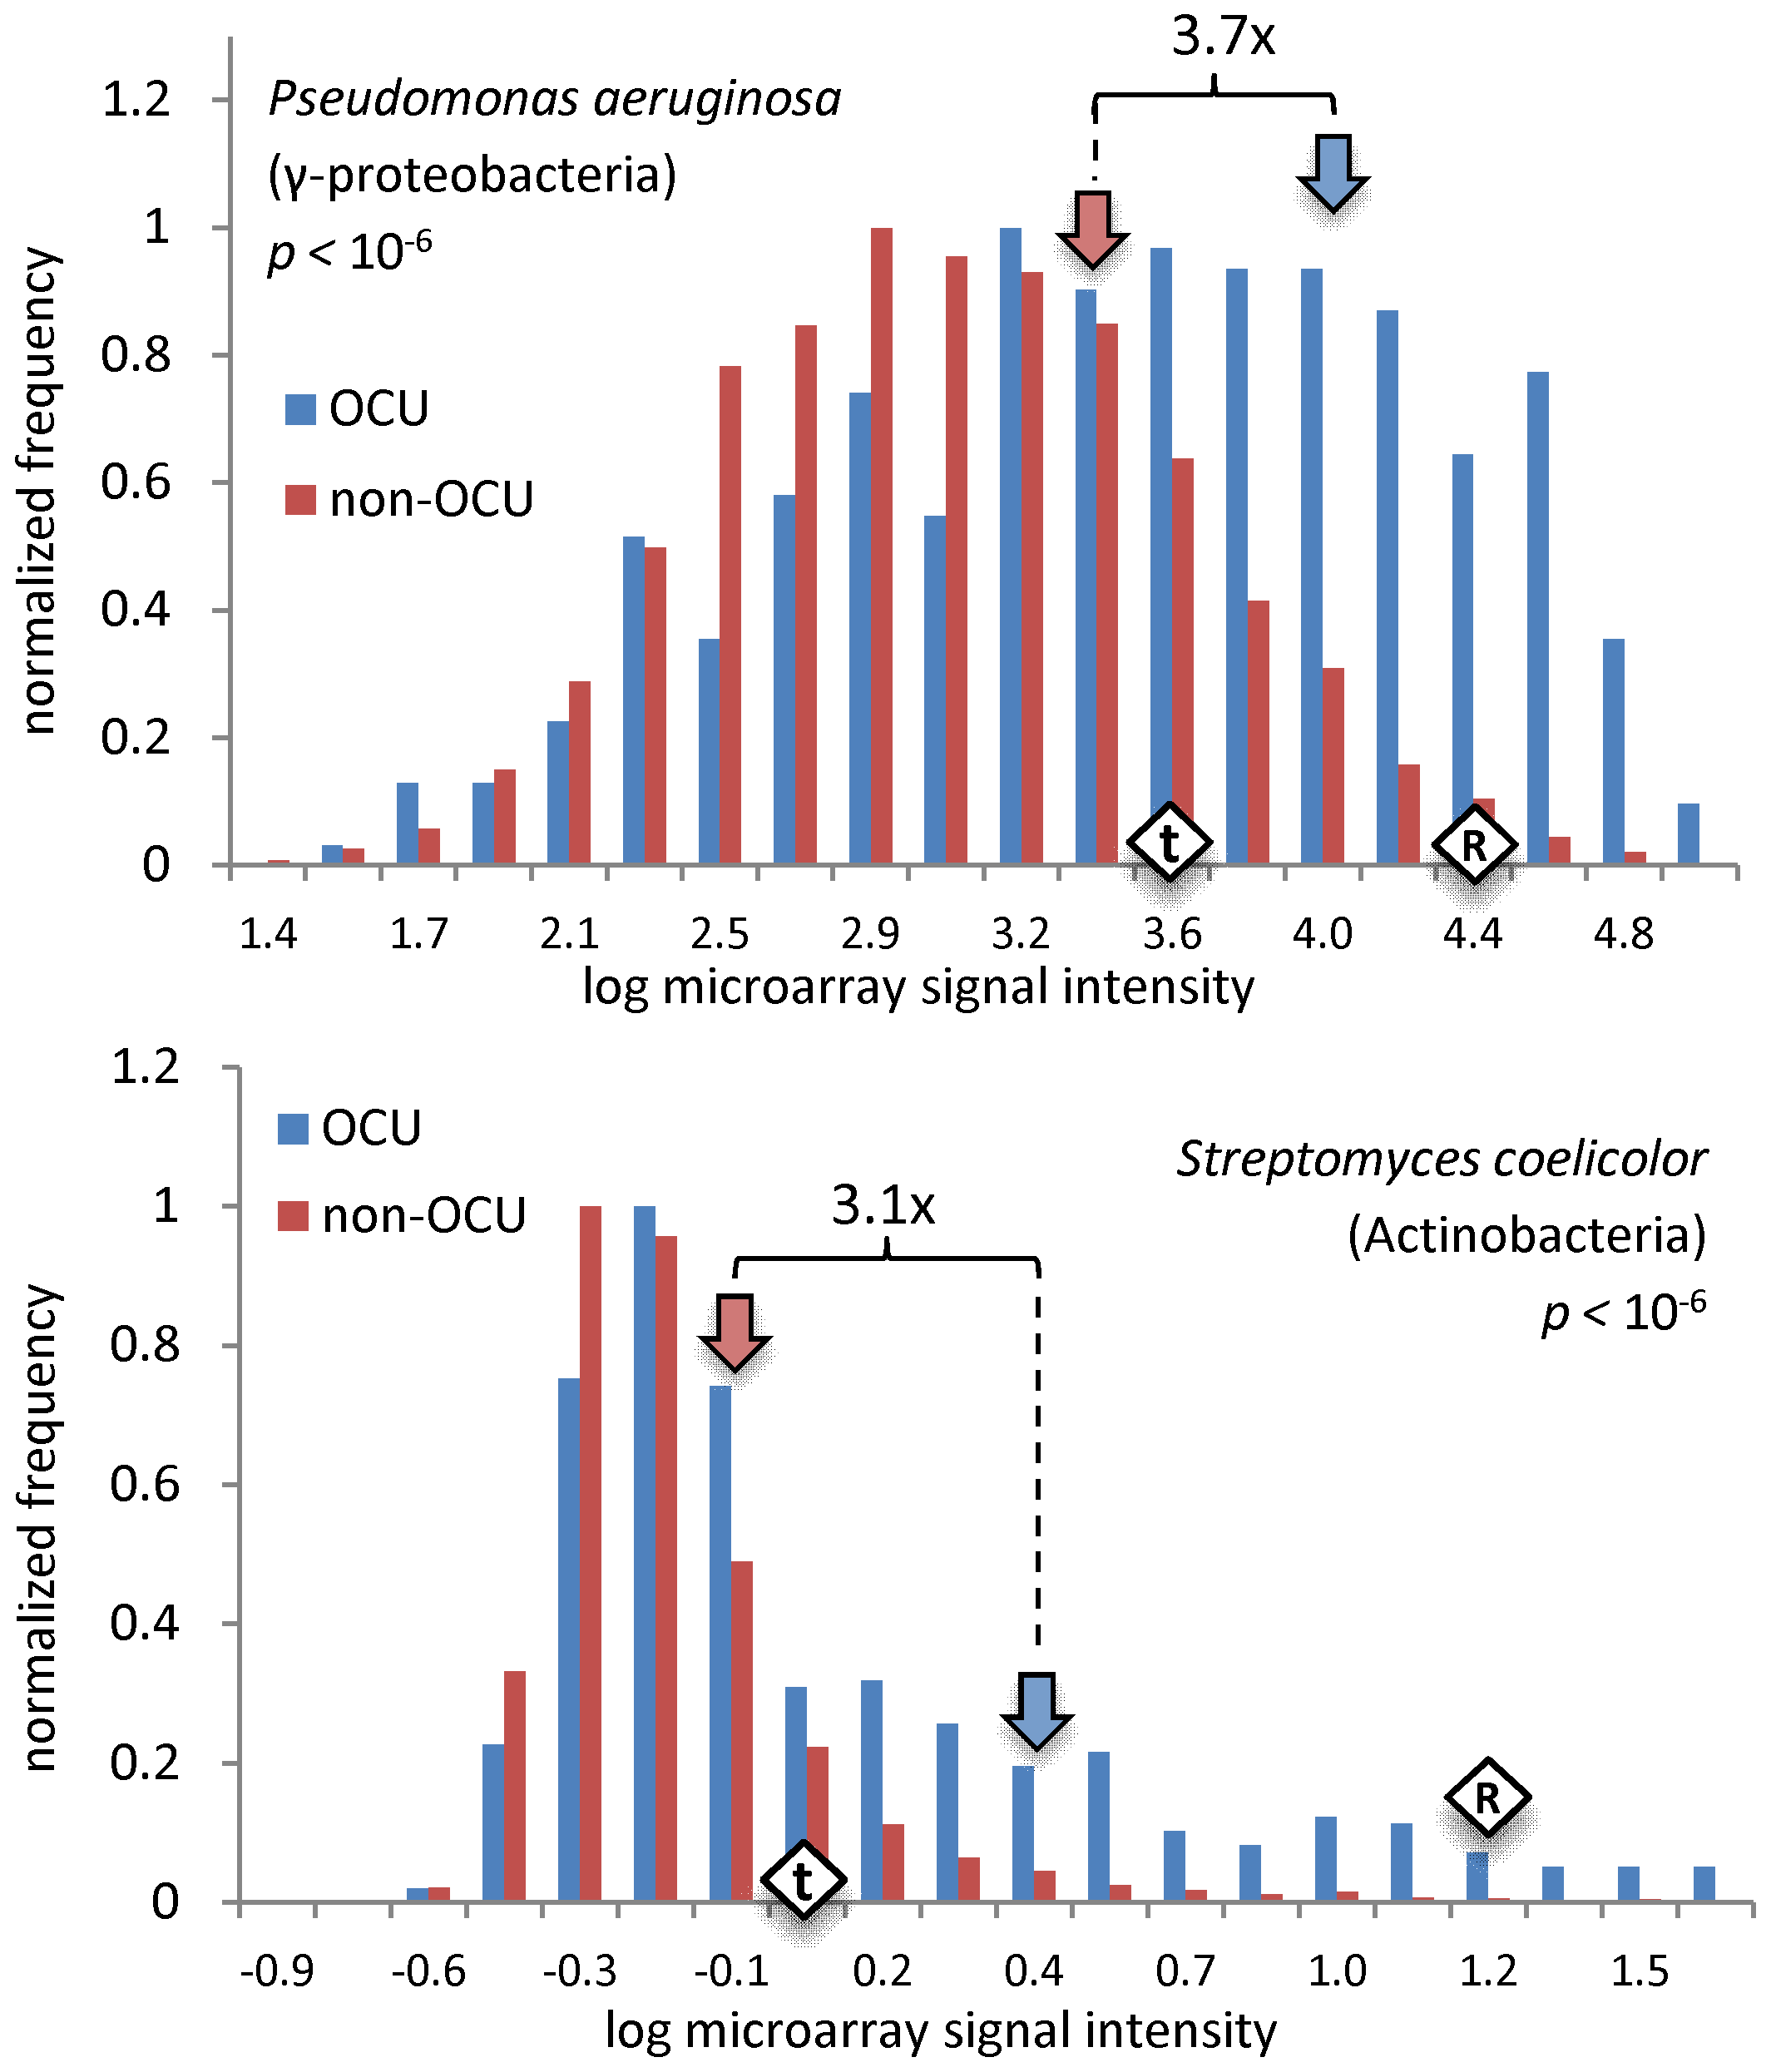 Expression levels of OCU versus non-OCU genes.